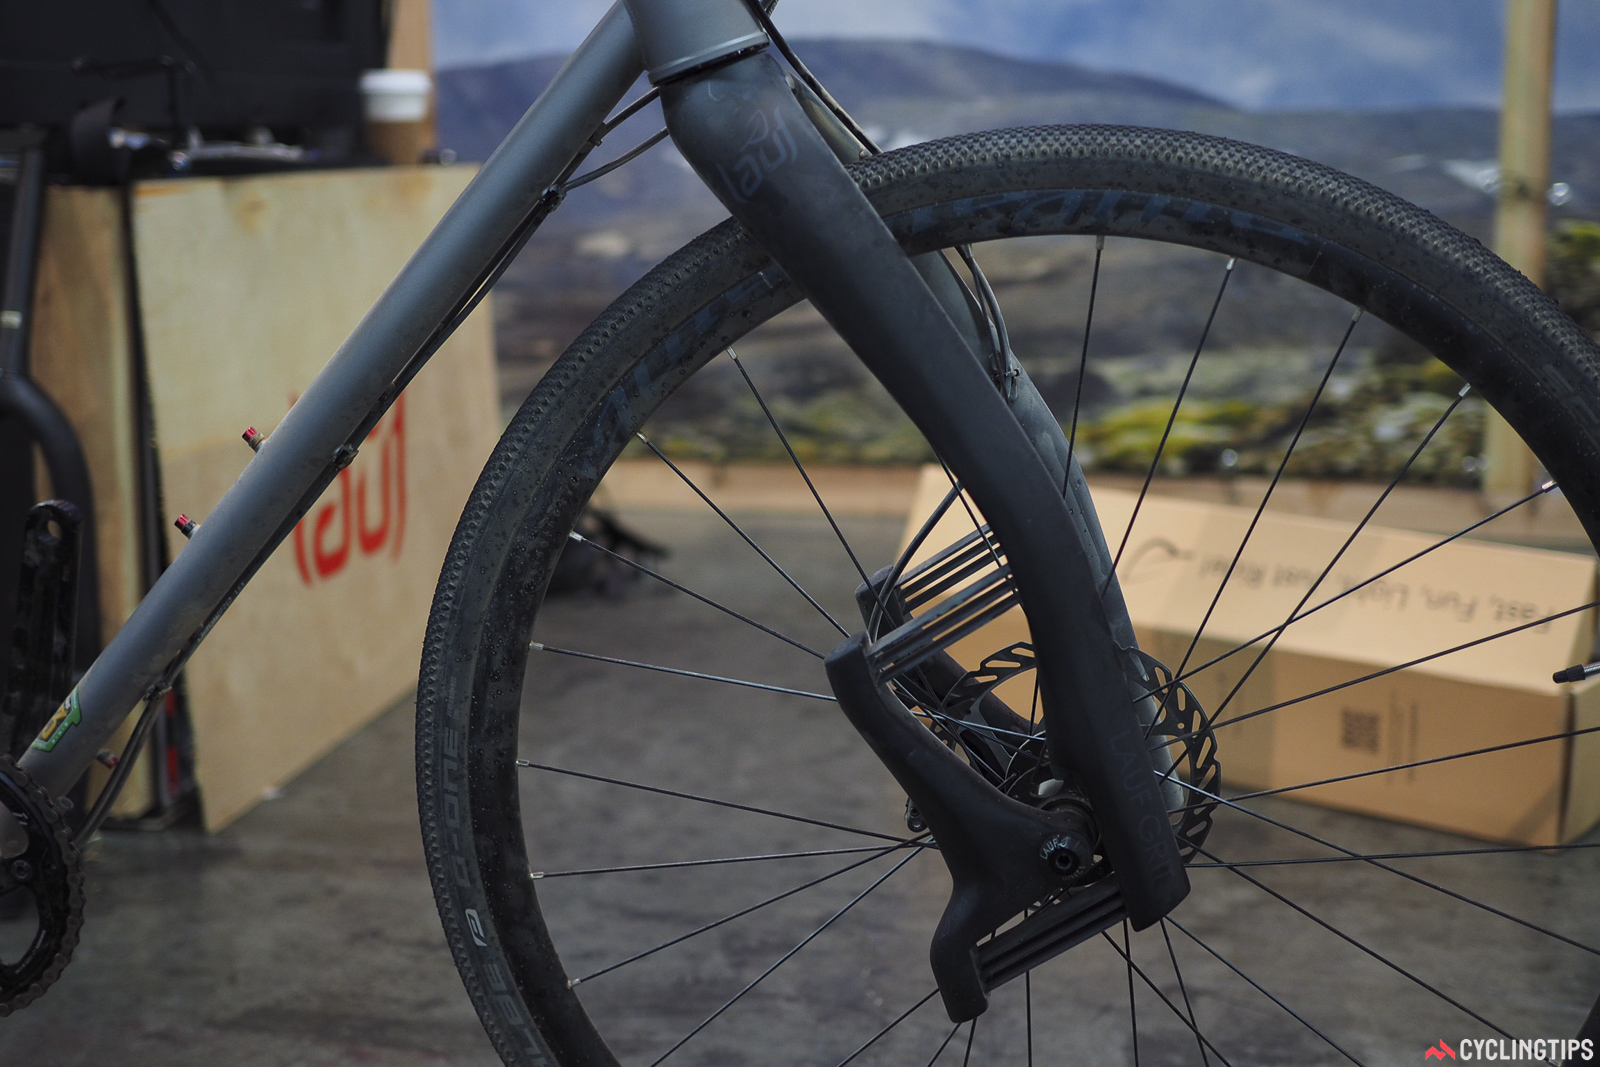 Icelandic company Lauf created quite a buzz when it introduced its wild all-carbon suspension fork three years ago. The Grit model is aimed at the gravel market, using the same clever four-bar, zero-stiction carbon leaf spring design. Total travel is just 30mm, but at a relatively minor weight penalty (claimed weight is 900g) and with plenty of potential benefit in the right application.